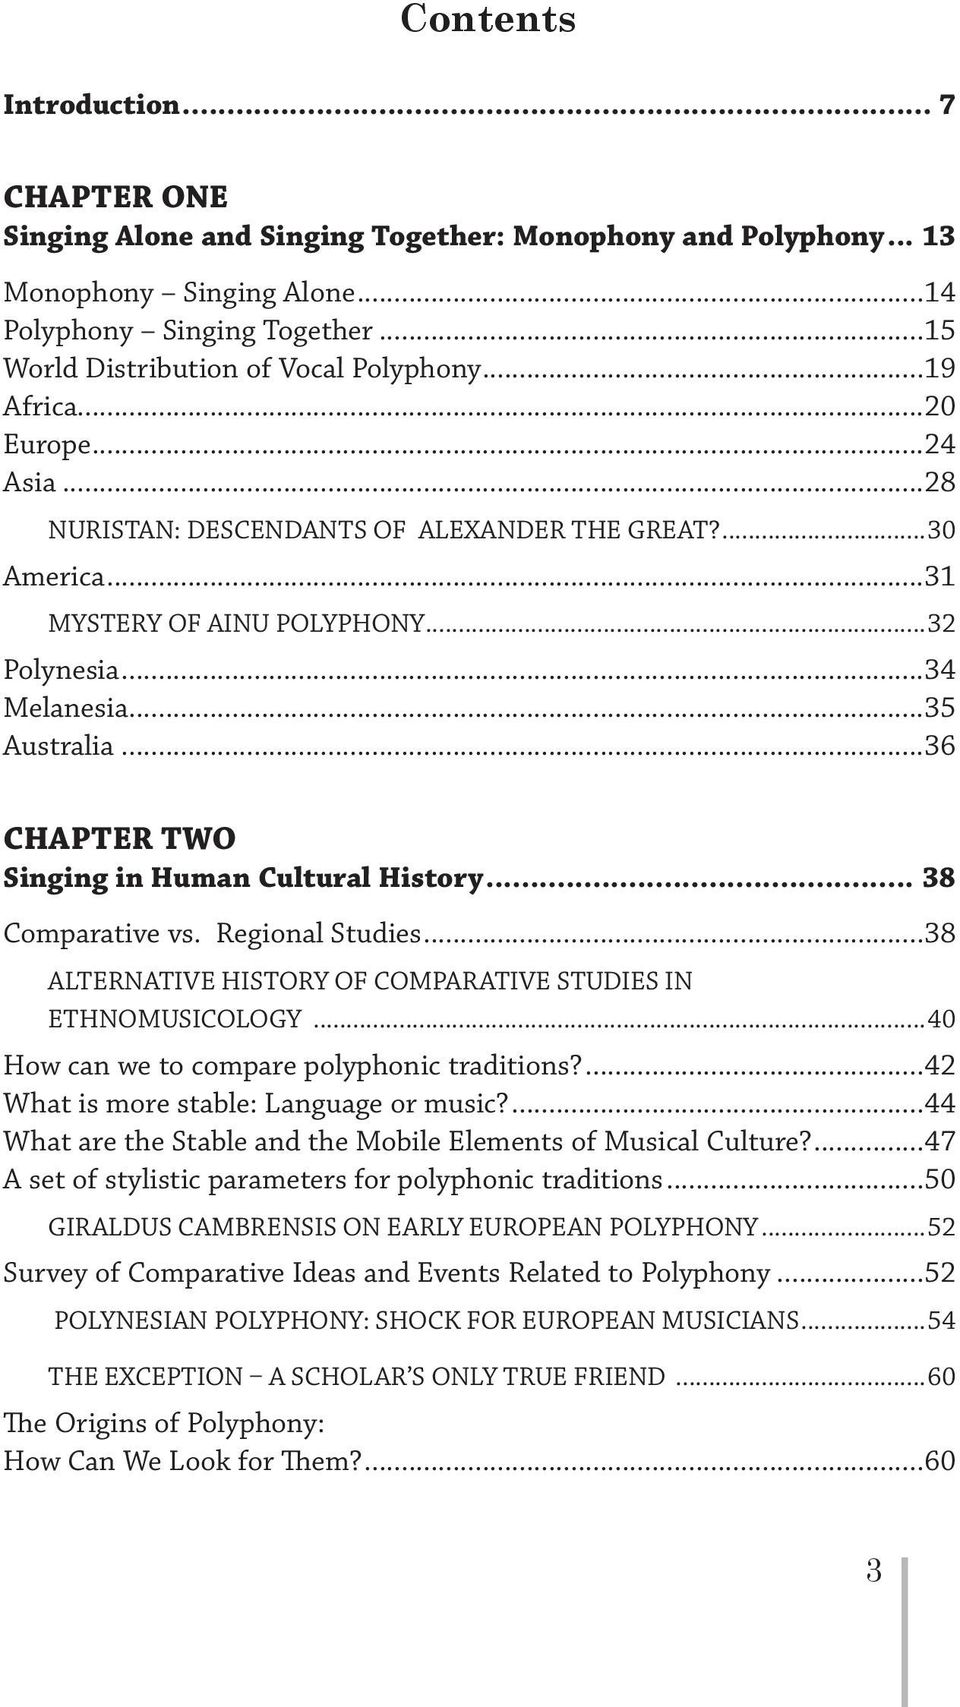 ..35 Australia...36 Chapter Two Singing in Human Cultural History... 38 Comparative vs. Regional Studies...38 Alternative History of Comparative Studies in Ethnomusicology.